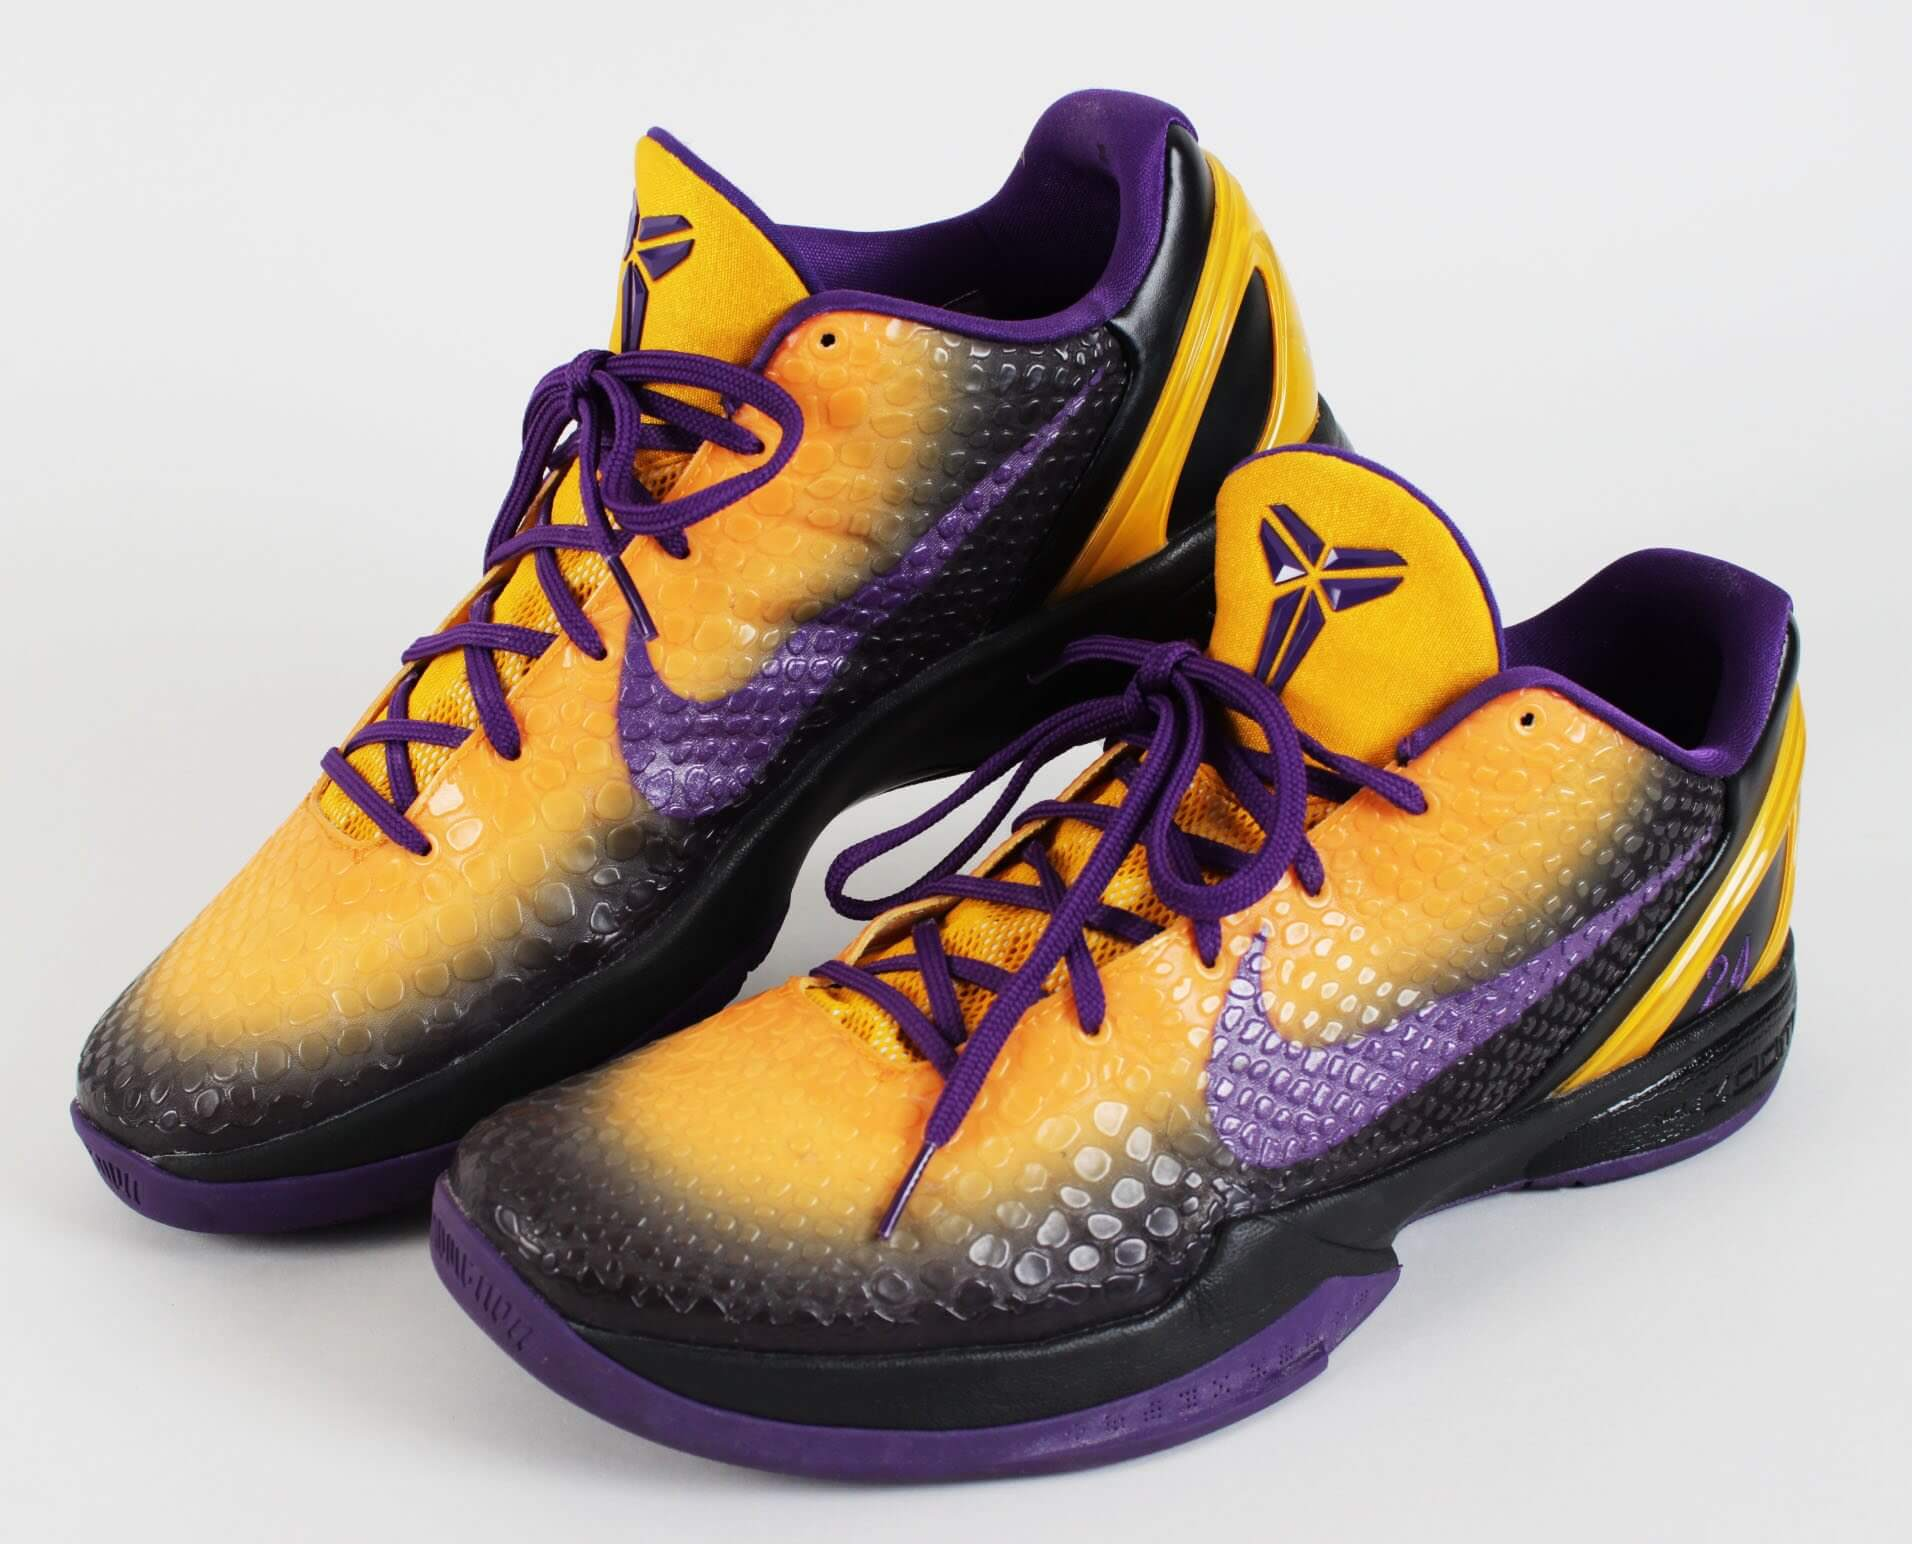 575c3ba5c569 ... snakeskin 0c9b4 4f6dc  spain 2010 11 lakers kobe bryant worn shoes nike  id sneakers. 2010 11 lakers kobe